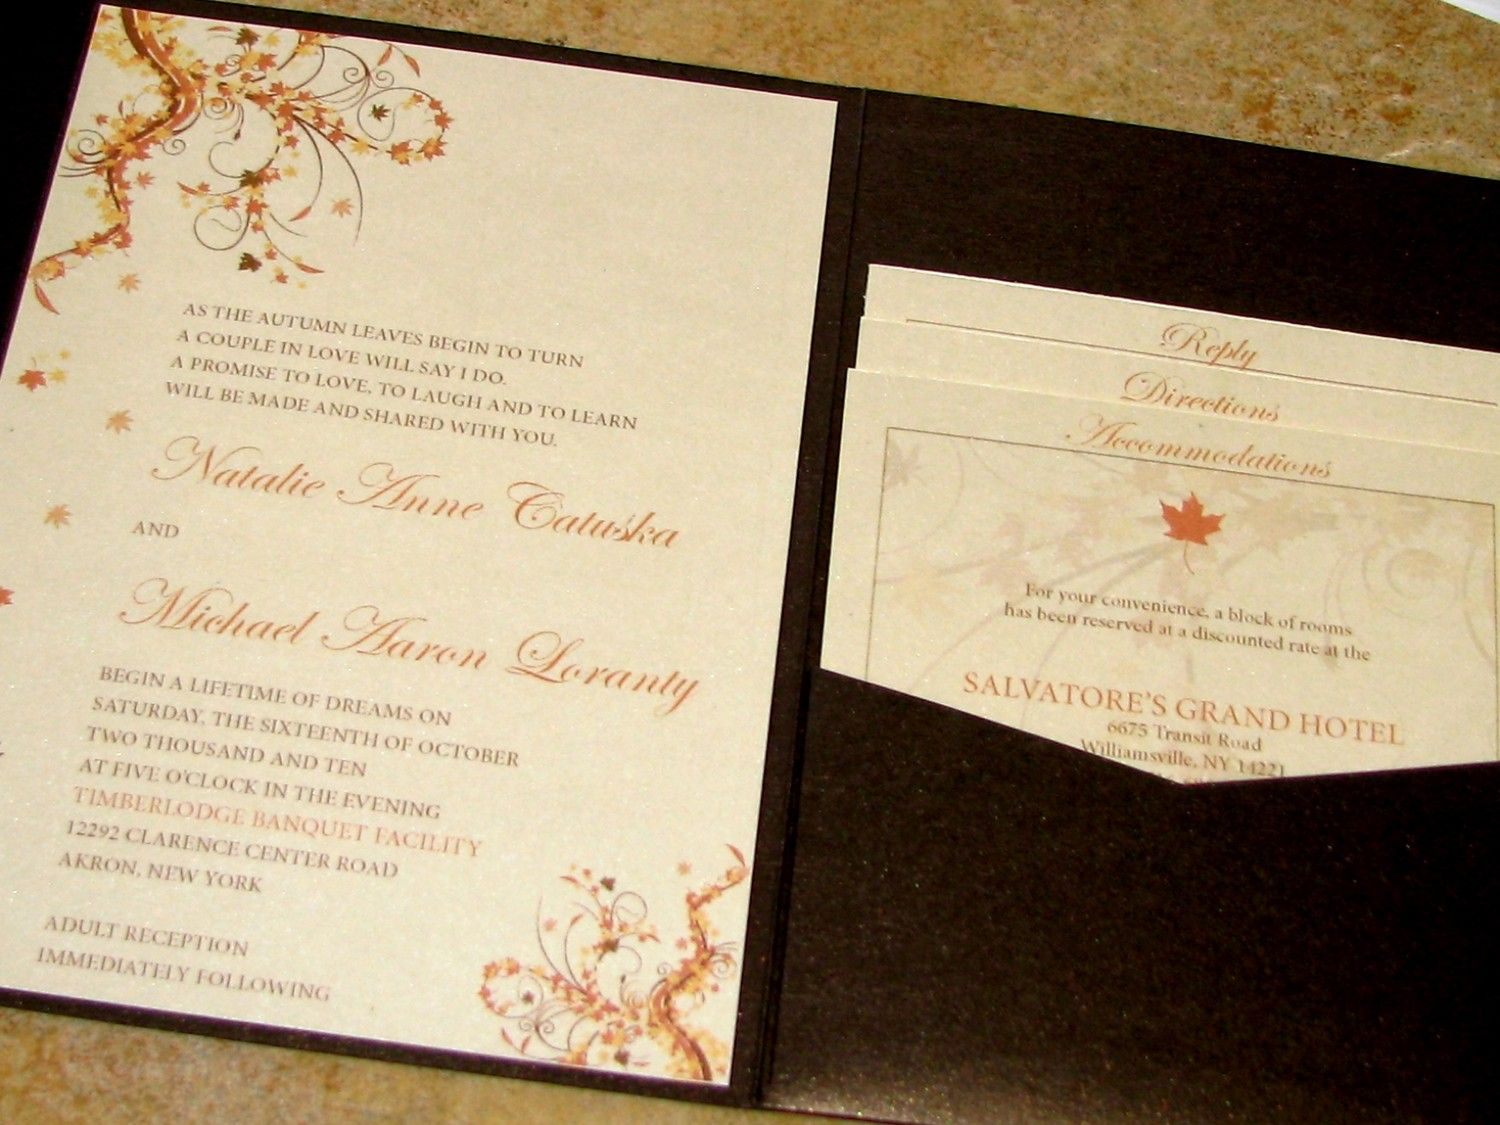 17 Best images about Invitation Ideas on Pinterest | Country fall ...